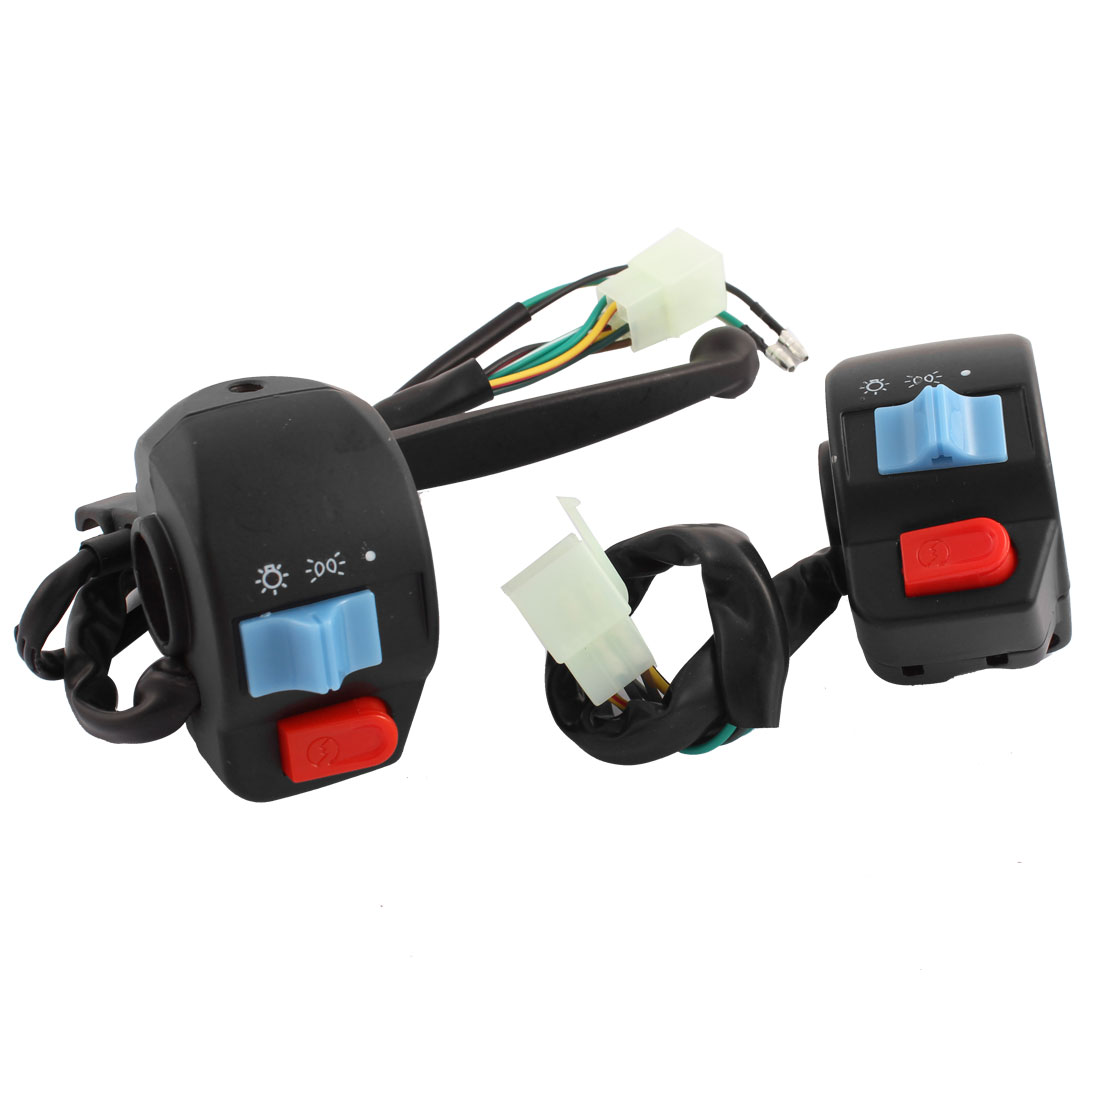 Motorbike Left Right Handlebar Starting Switch Controller Pair for GY6-125